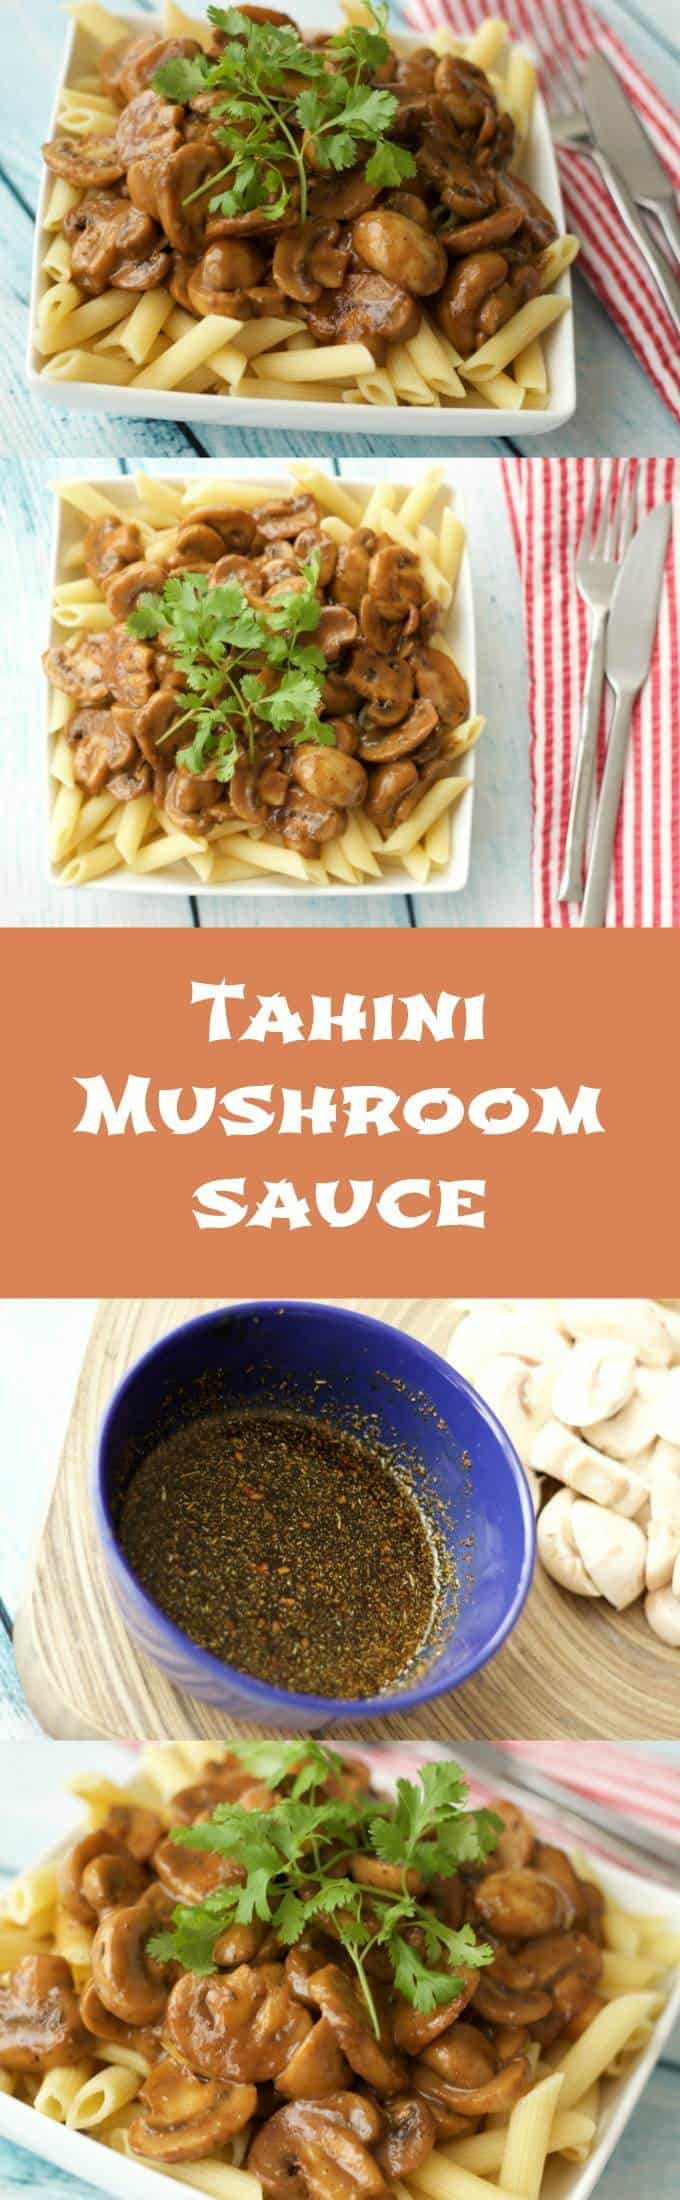 Rich and creamy tahini mushroom sauce served over penne. With just 6 ingredients, this is a sauce that you'll come back to time and again. | lovingitvegan.com